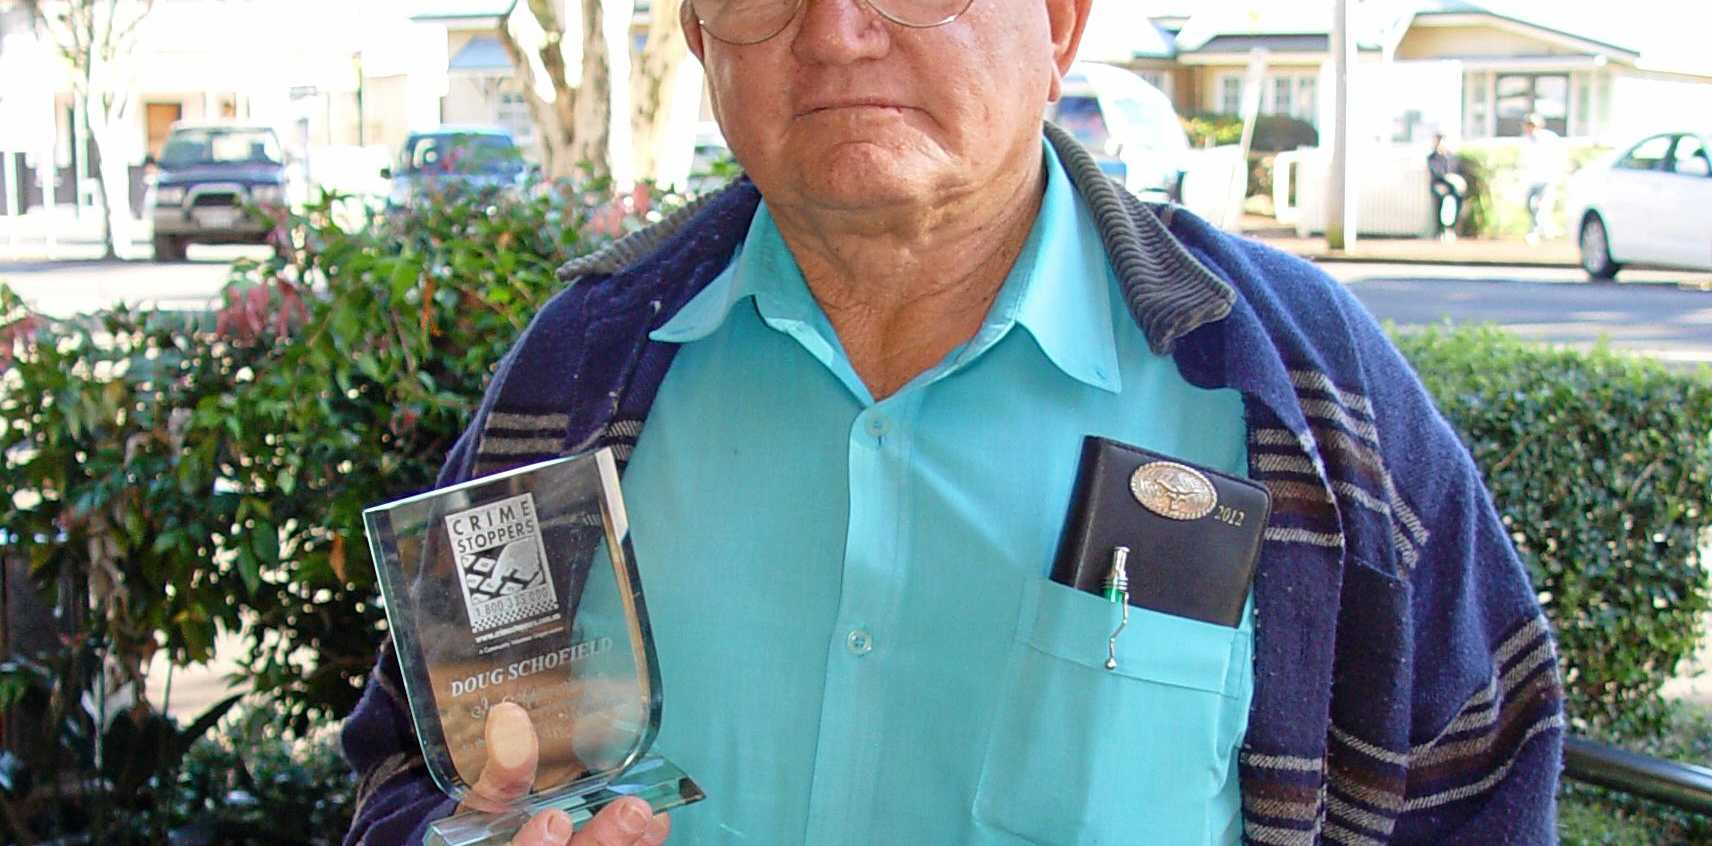 HONOUR: The late Doug Schofield, with a trophy recognising his fundraising for Bundaberg Region Crime Stoppers Committee, is being honoured by the council.